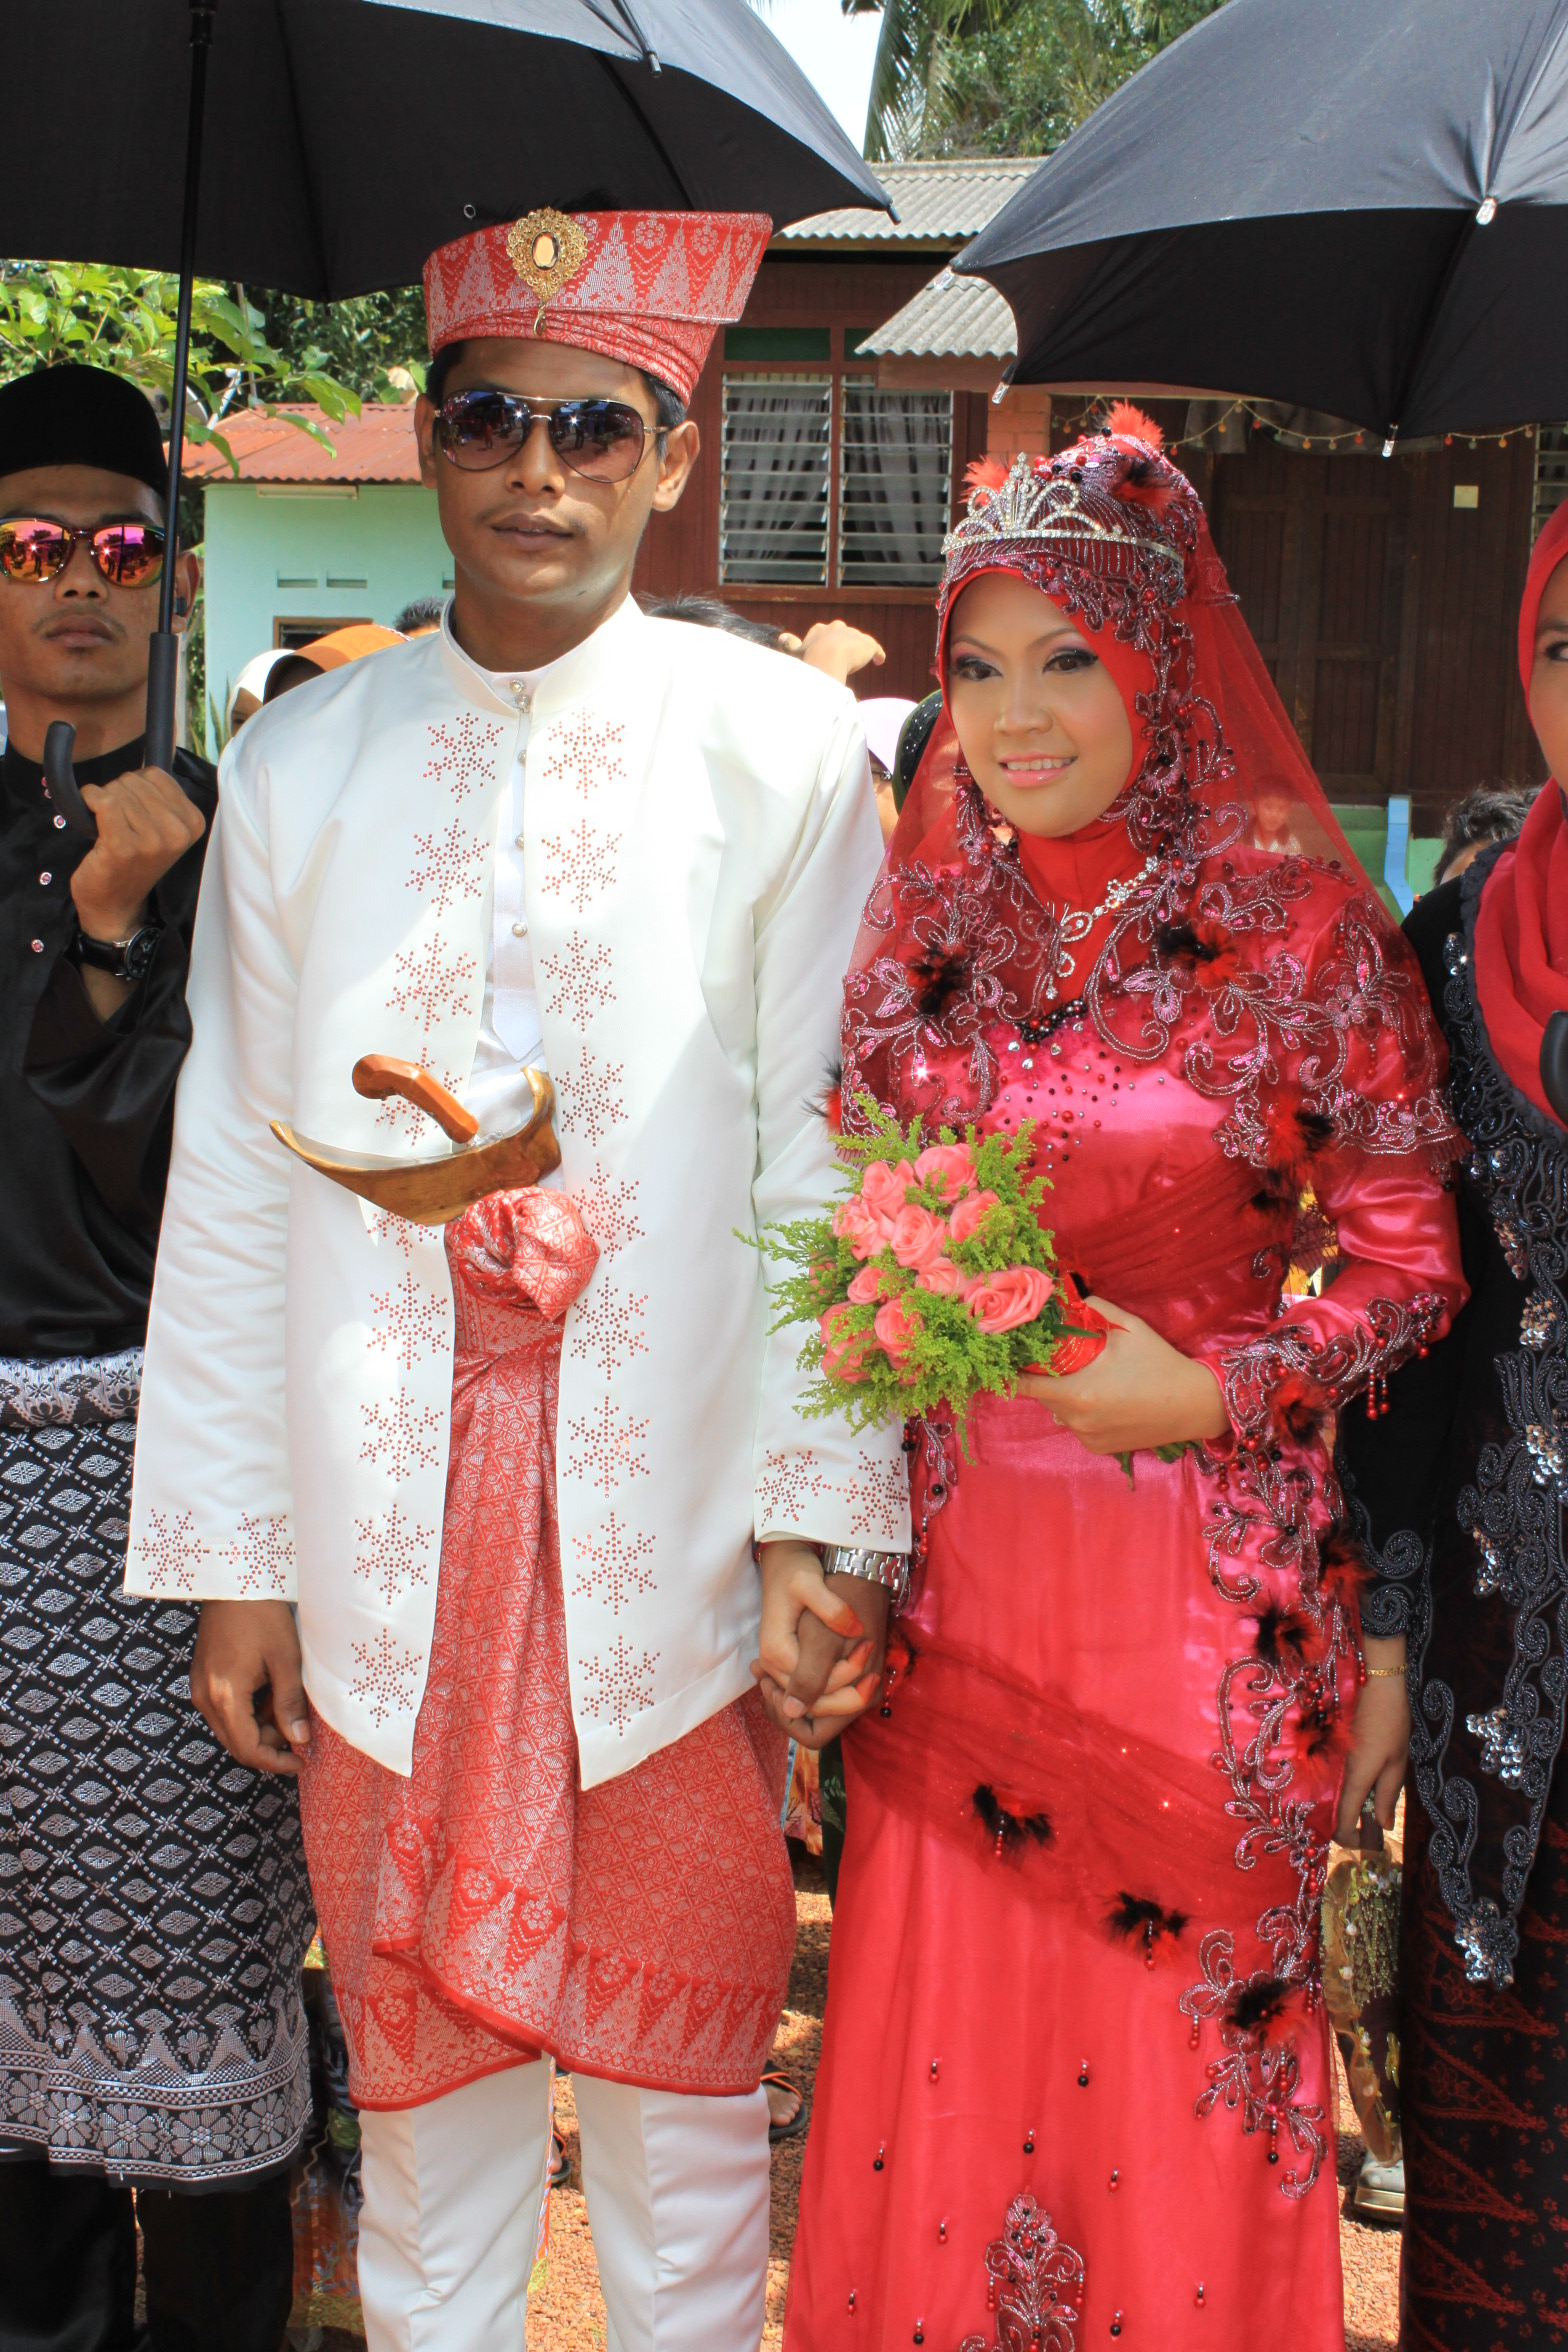 pelamin,kanopi,photographer,baju pengantin L&P,make up,P.A system. di